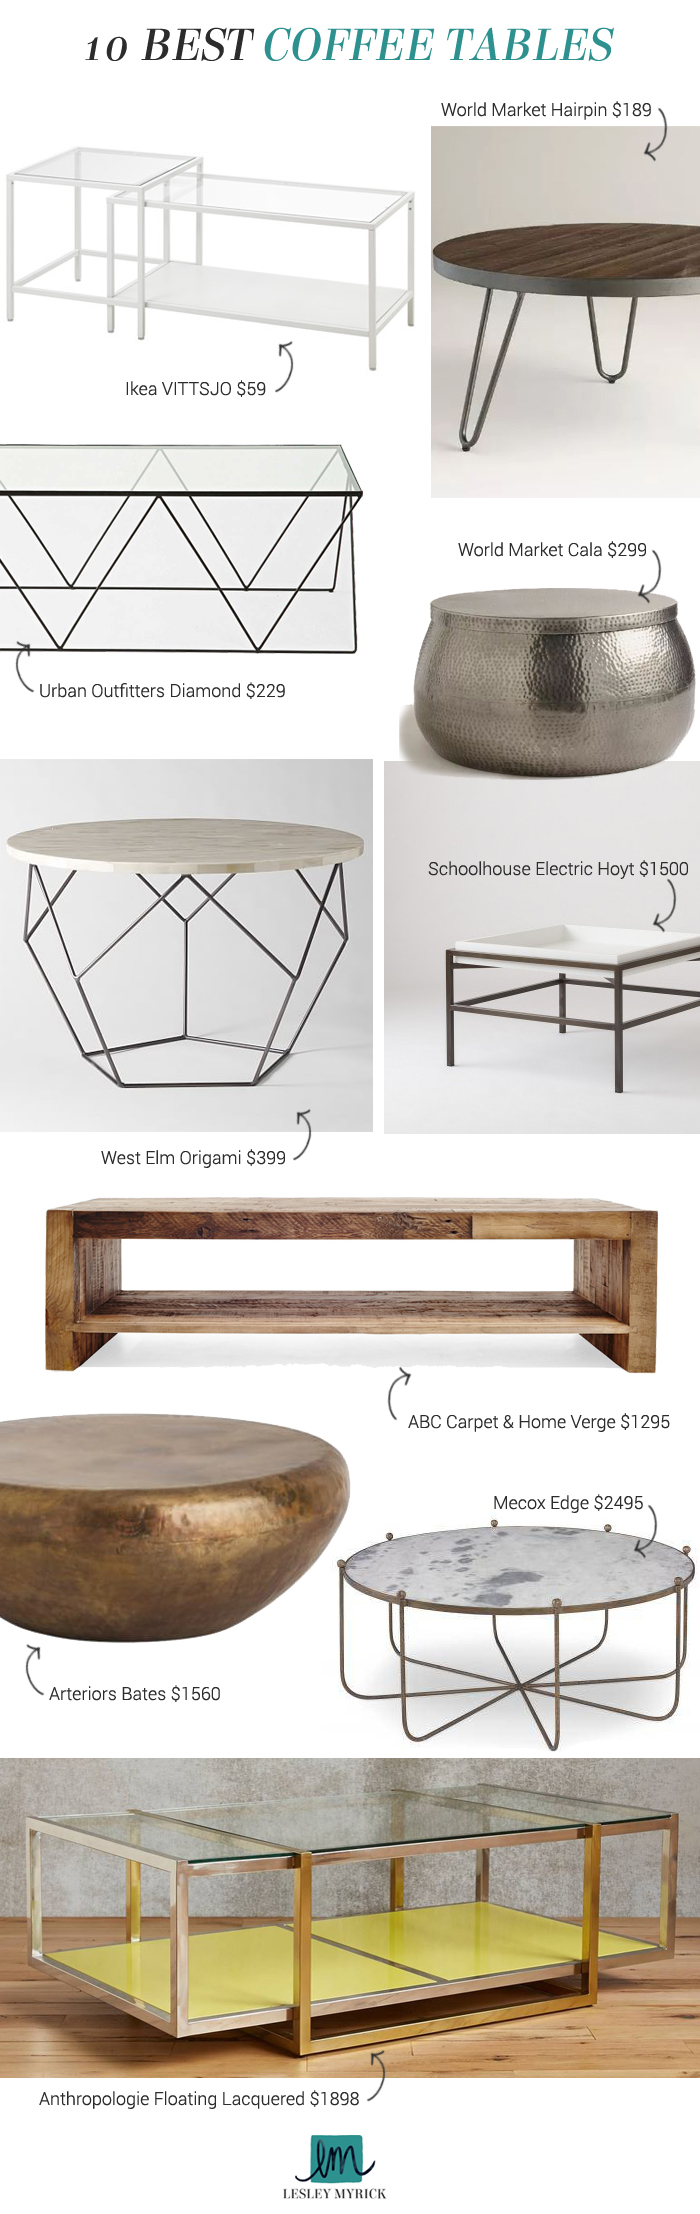 Lesley's Picks: 10 Best Coffee Tables